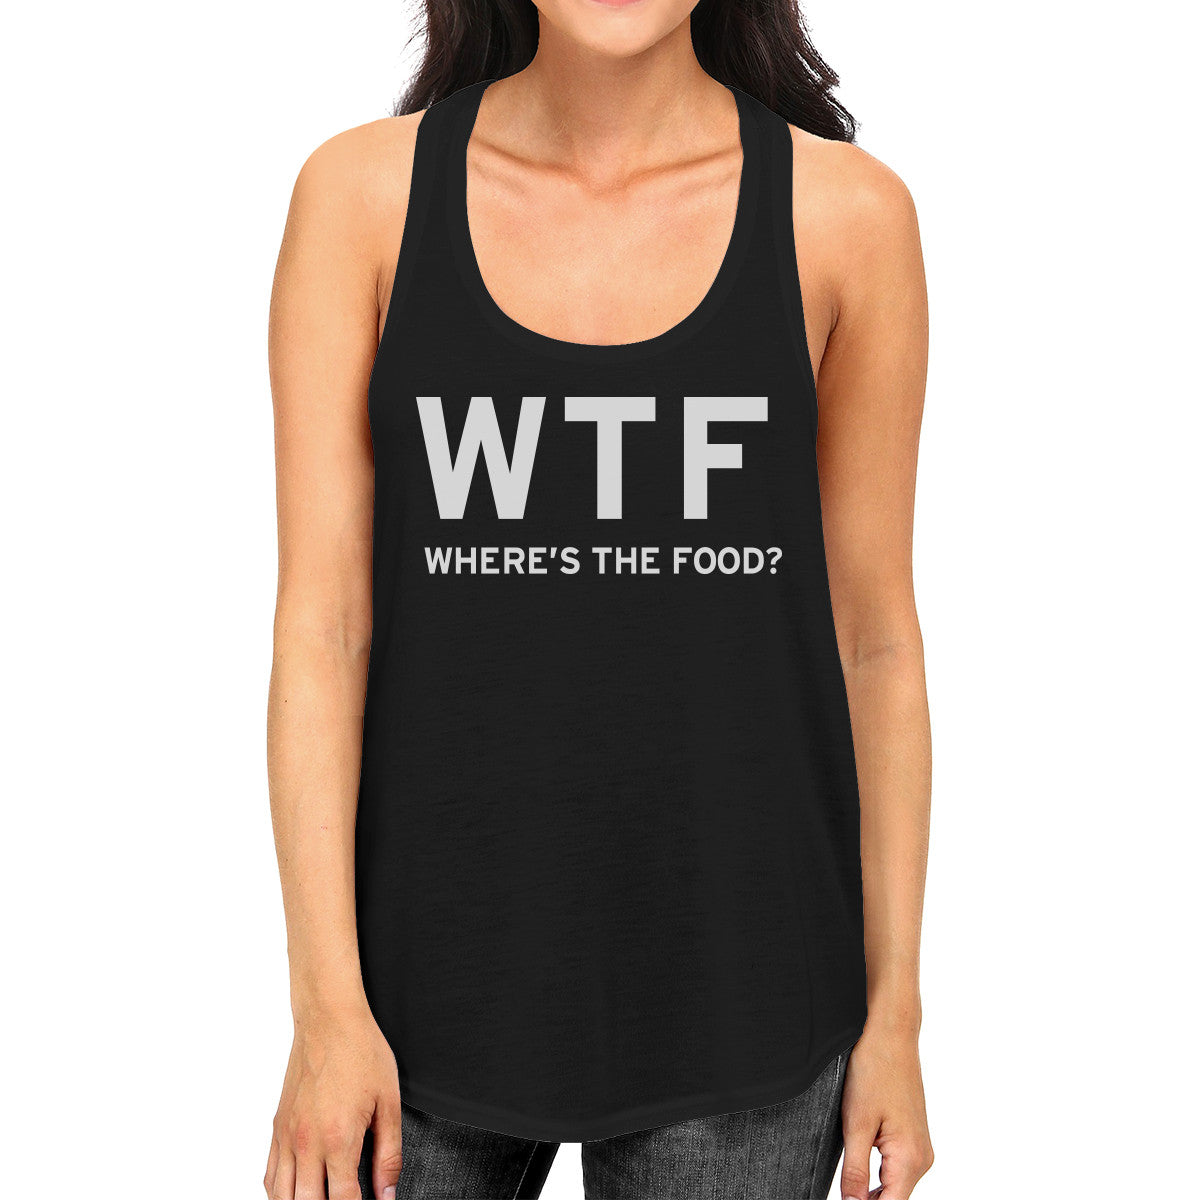 676606d24 Where's The Food Tank Top Work Out Shirt Funny Gym Racerback - 365 ...